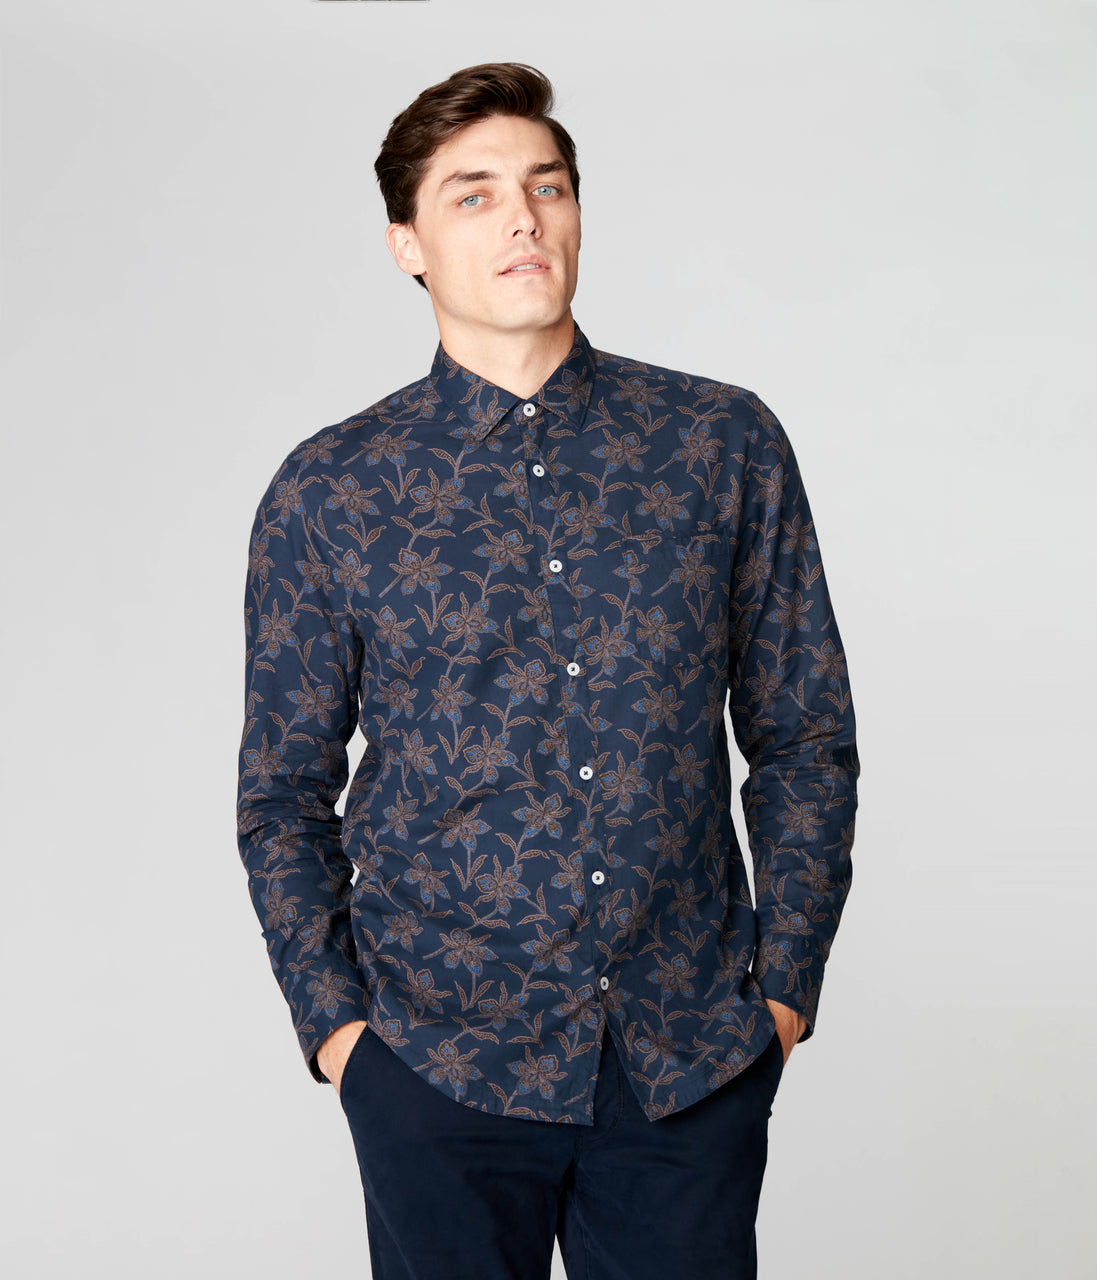 On-Point Print Shirt - Navy Magnolia Floral - Good Man Brand - On-Point Print Shirt - Navy Magnolia Floral